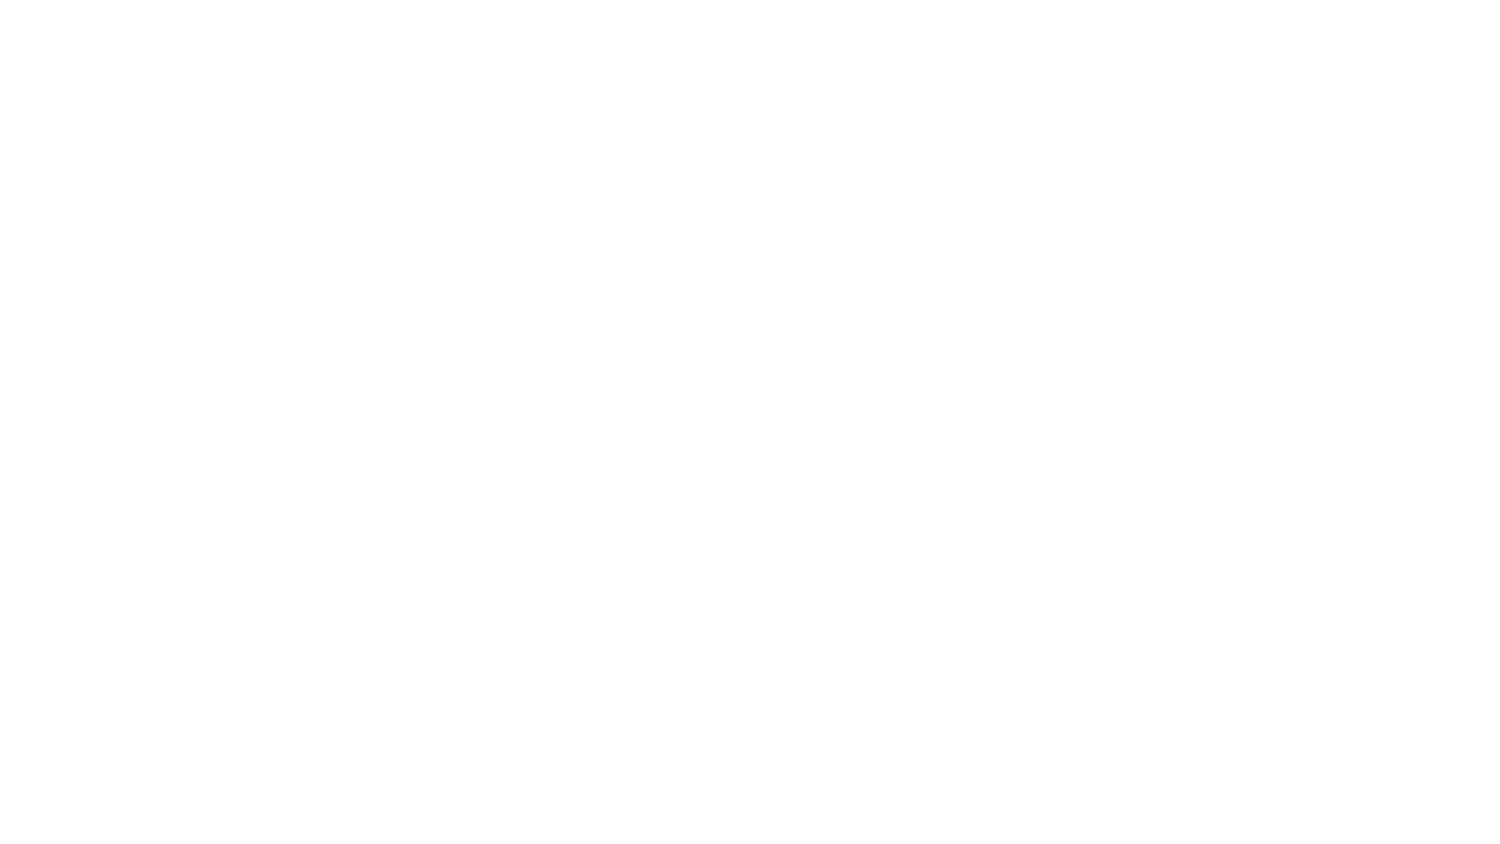 Oxford Assembly of God